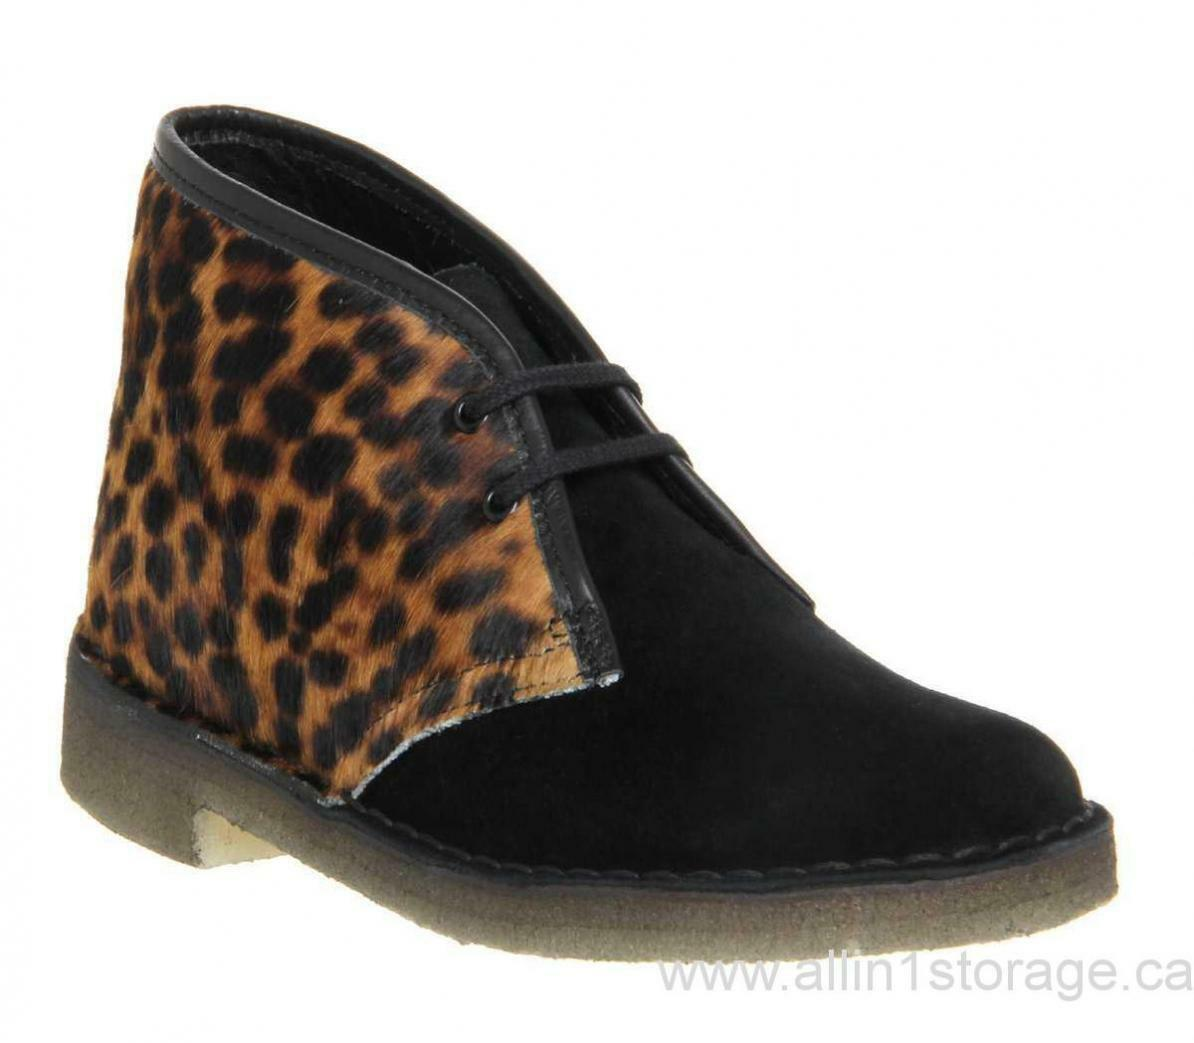 Clarks Originals Damenschuhe  X Desert  Boot Animal Leopard Print  Desert UK 4,5,6,7,8 C fab620